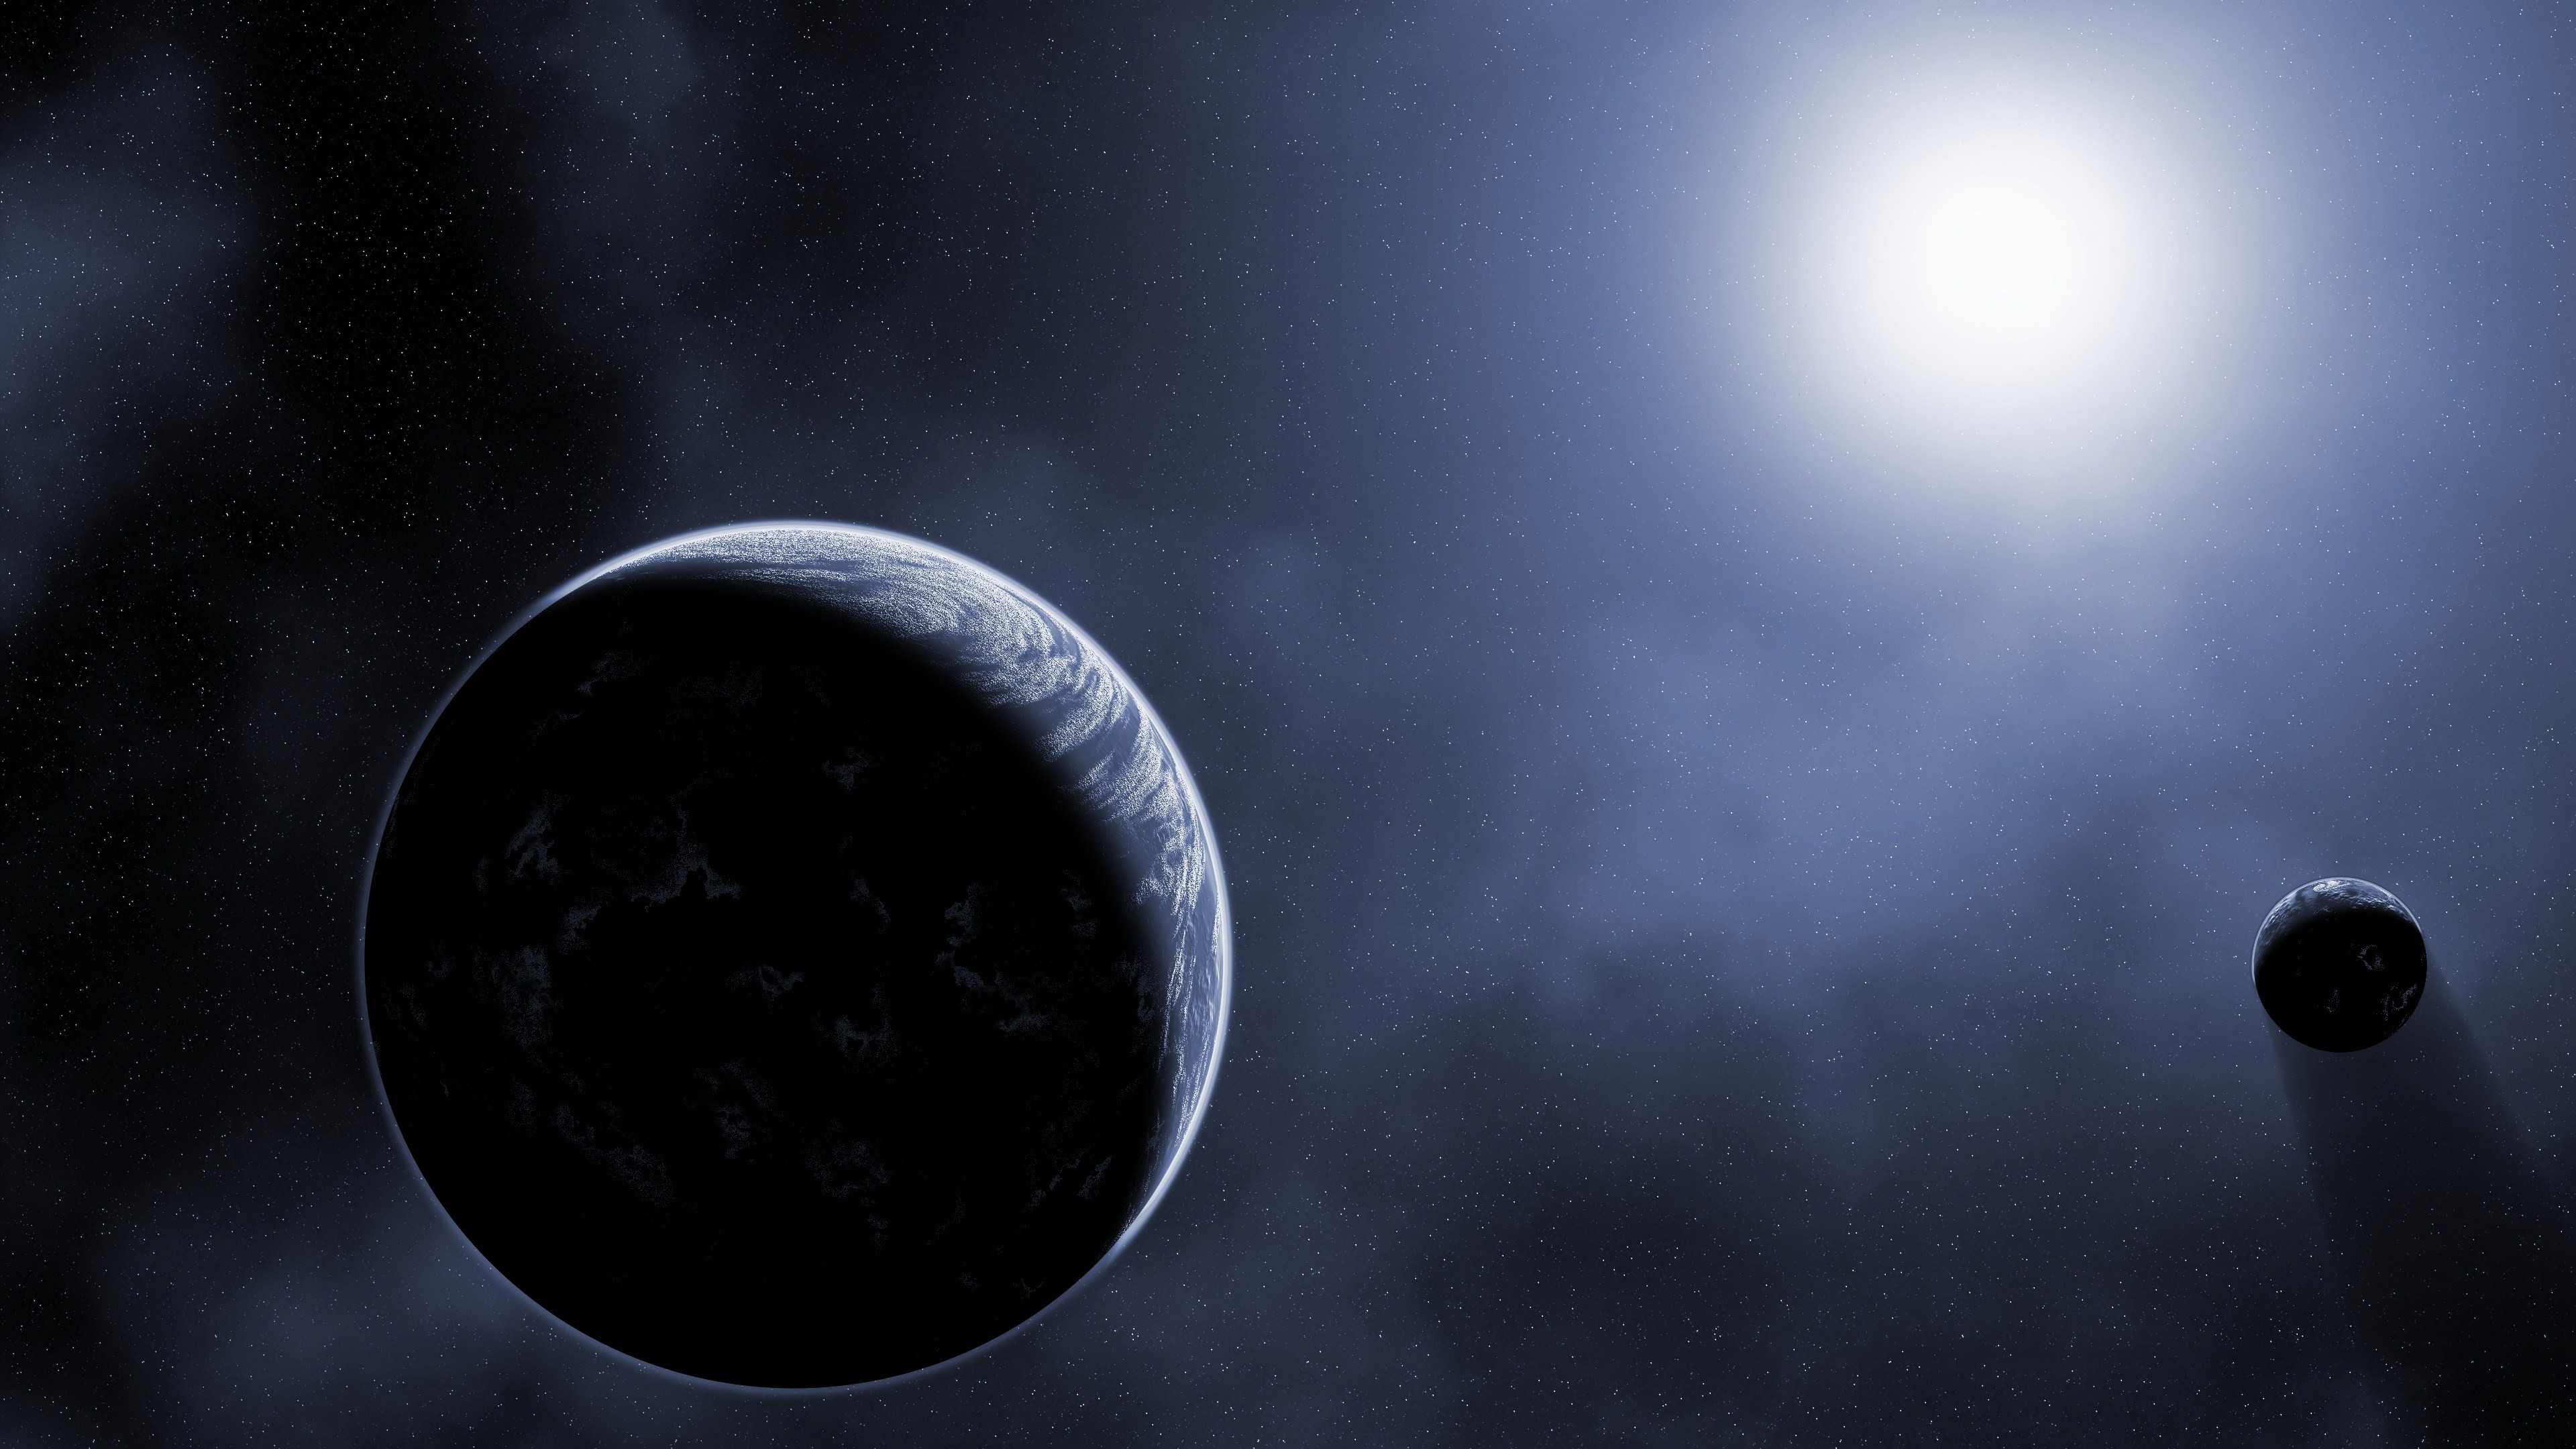 Space wallpaper 4k download free awesome high - Space wallpaper large ...